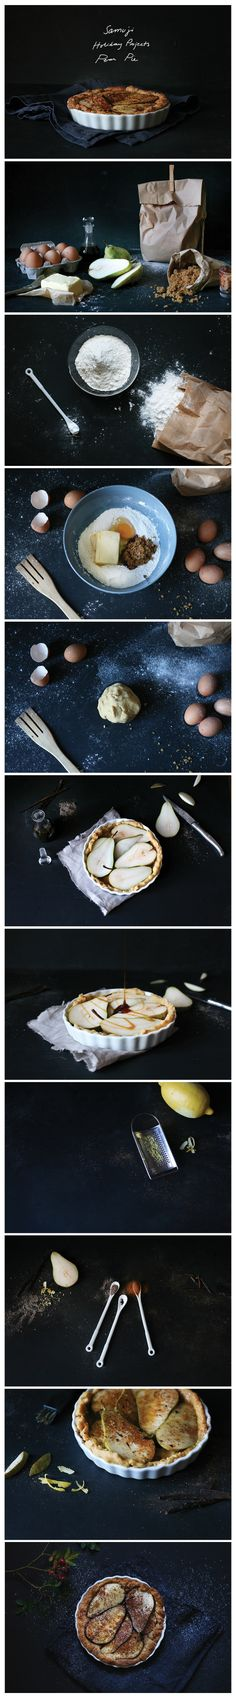 Samuji Holiday Projects: Pear Pie